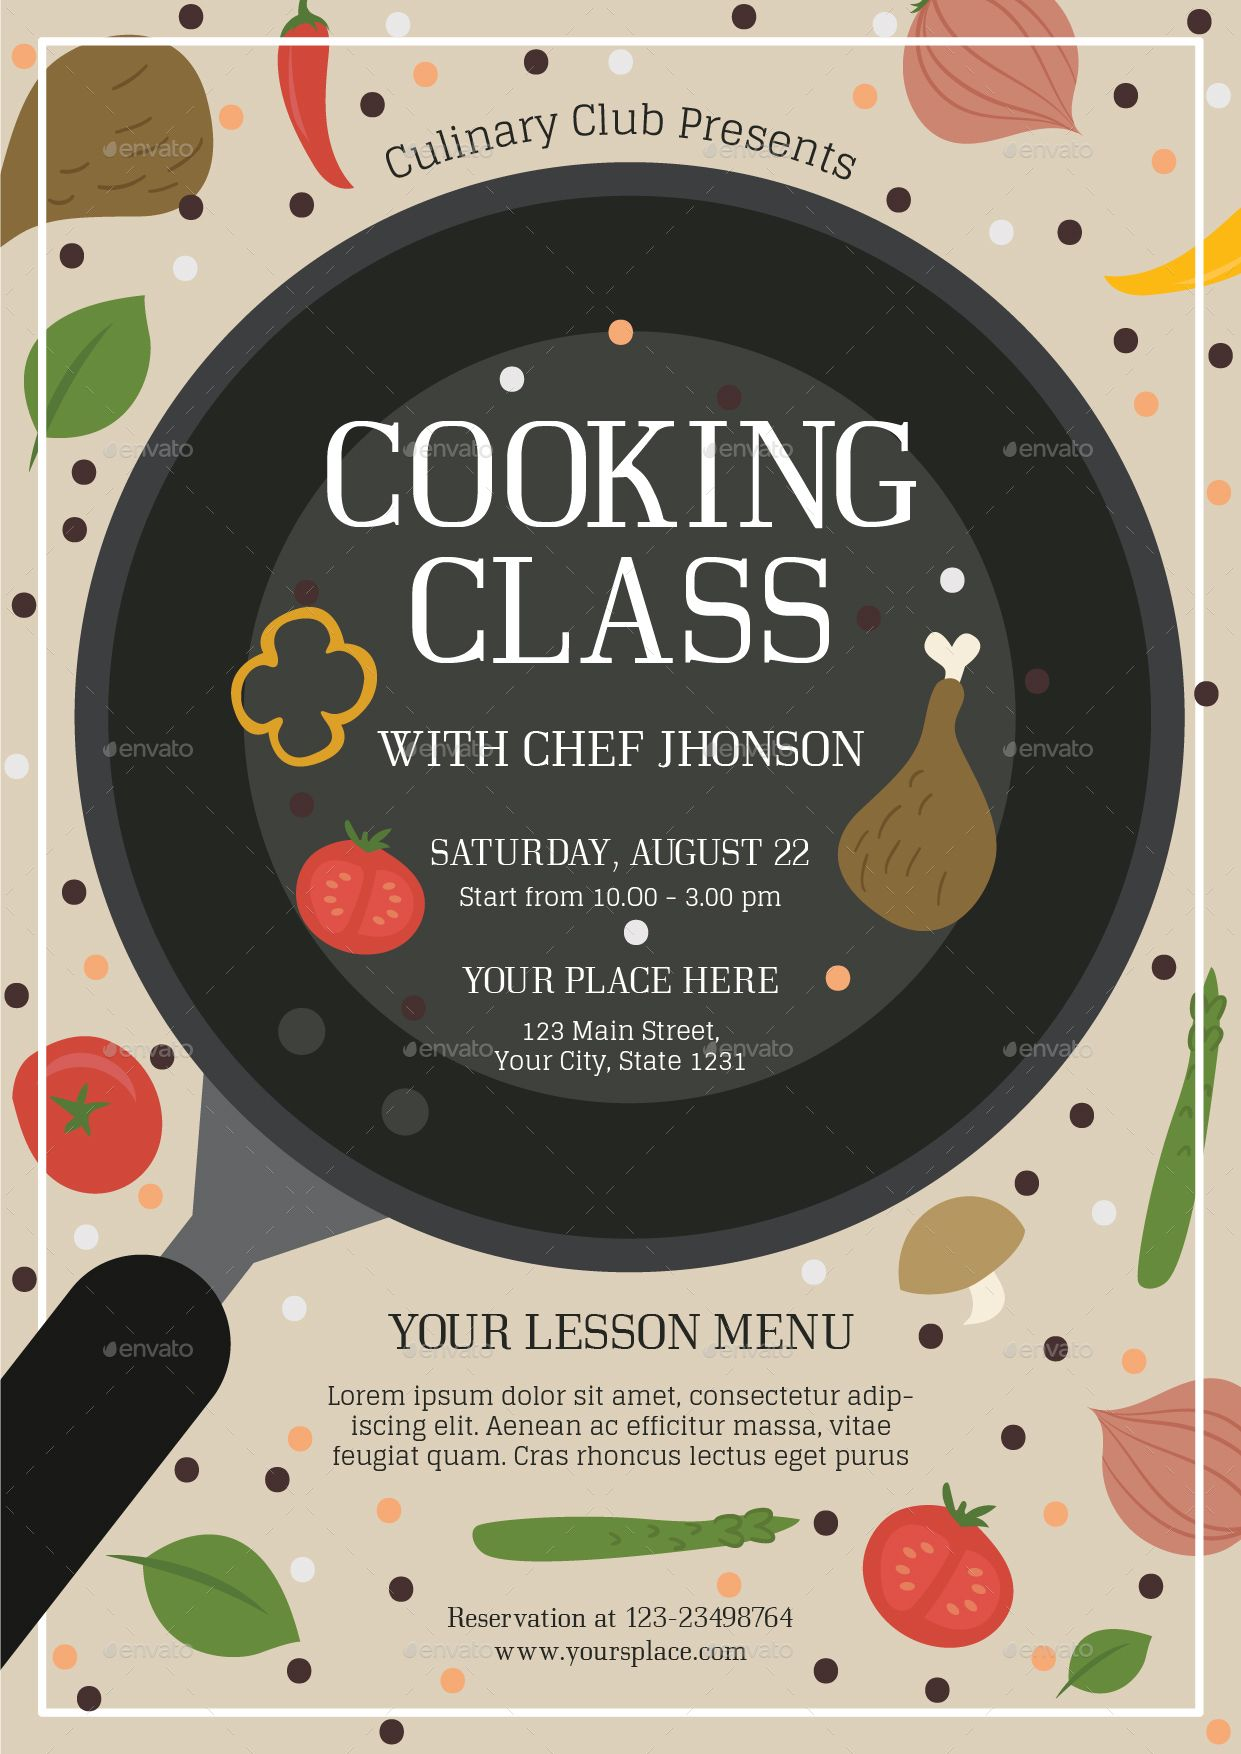 Cooking Class 2 Flyer Template Cooking Classes Design Cooking Classes Cooking Academy Cooking class flyer template free